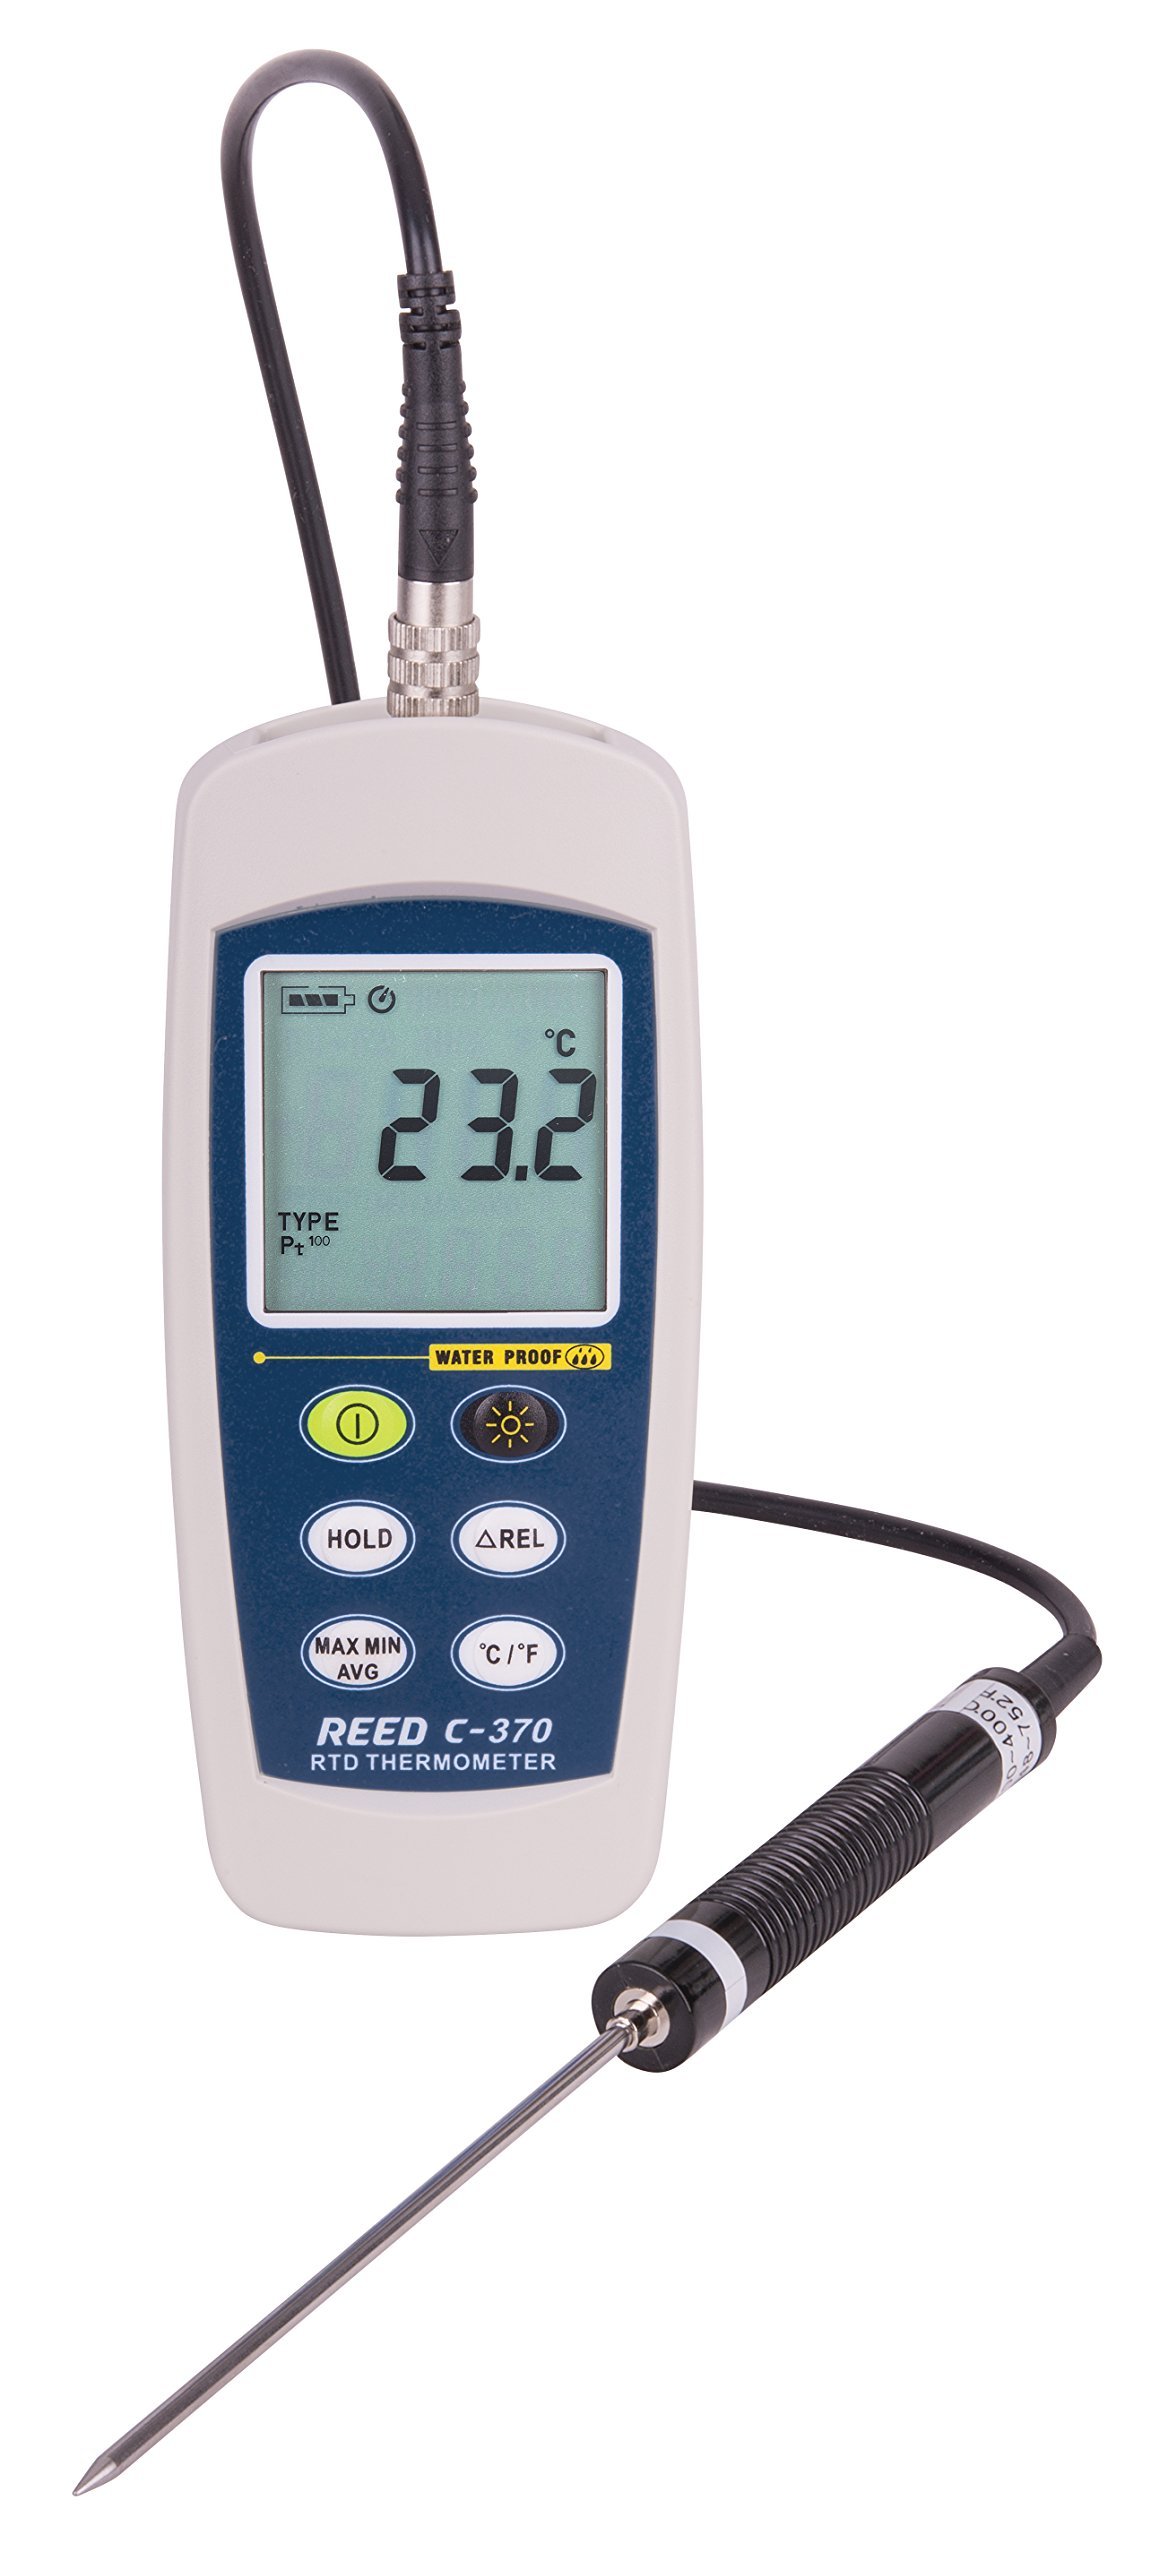 REED Instruments C-370 RTD Thermometer, -148 to 572°F (-100 to 300°C), Waterproof (IP67)